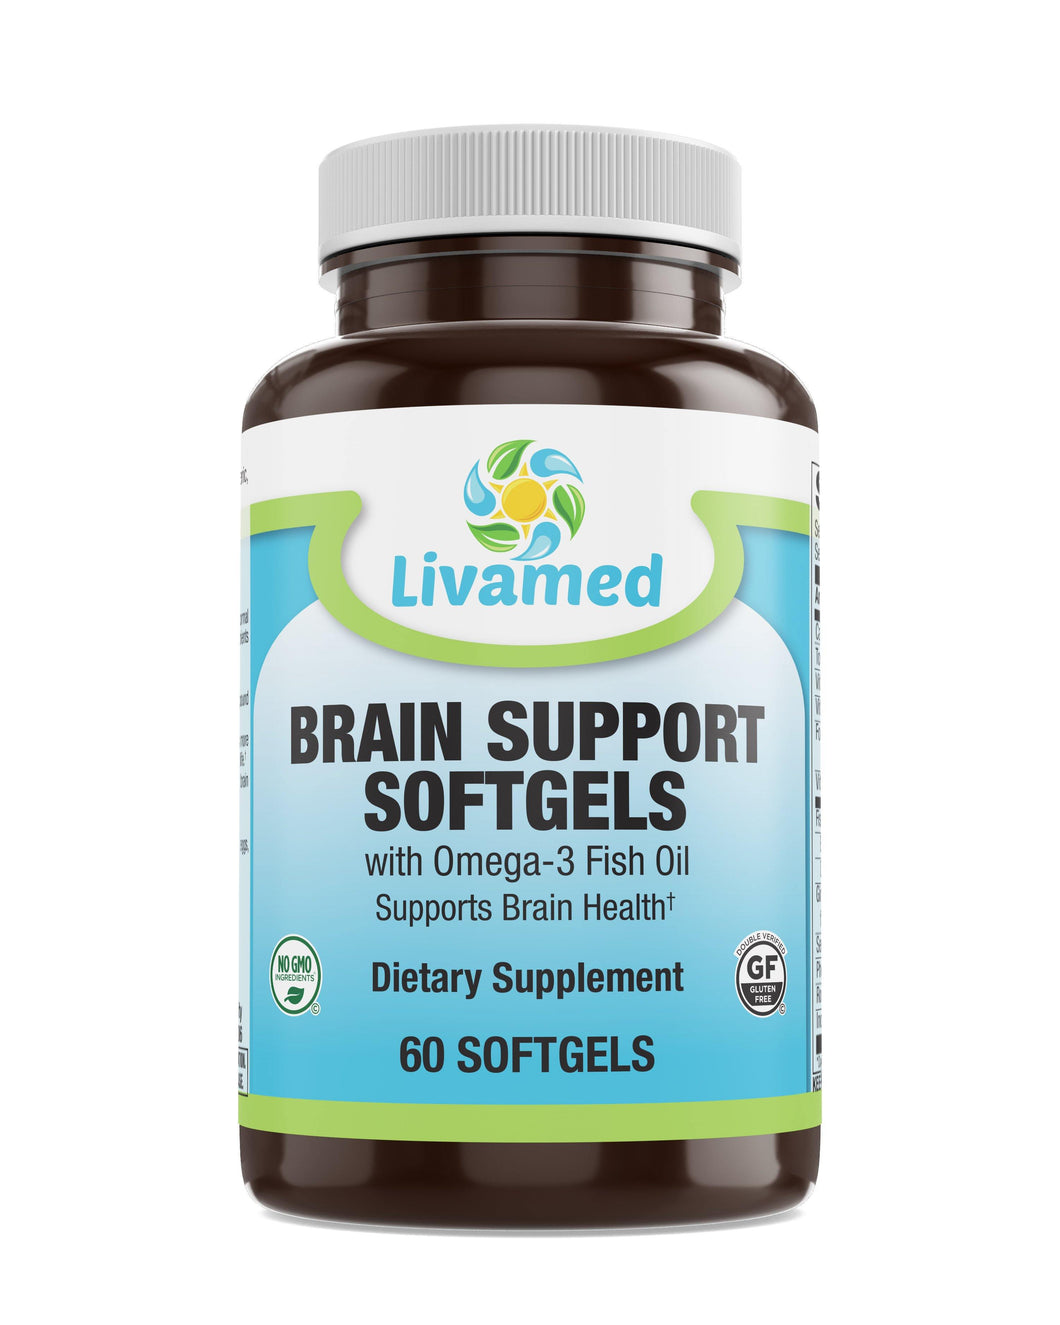 Livamed - Brain Support Softgels with Omega-3 Fish Oil 60 Count